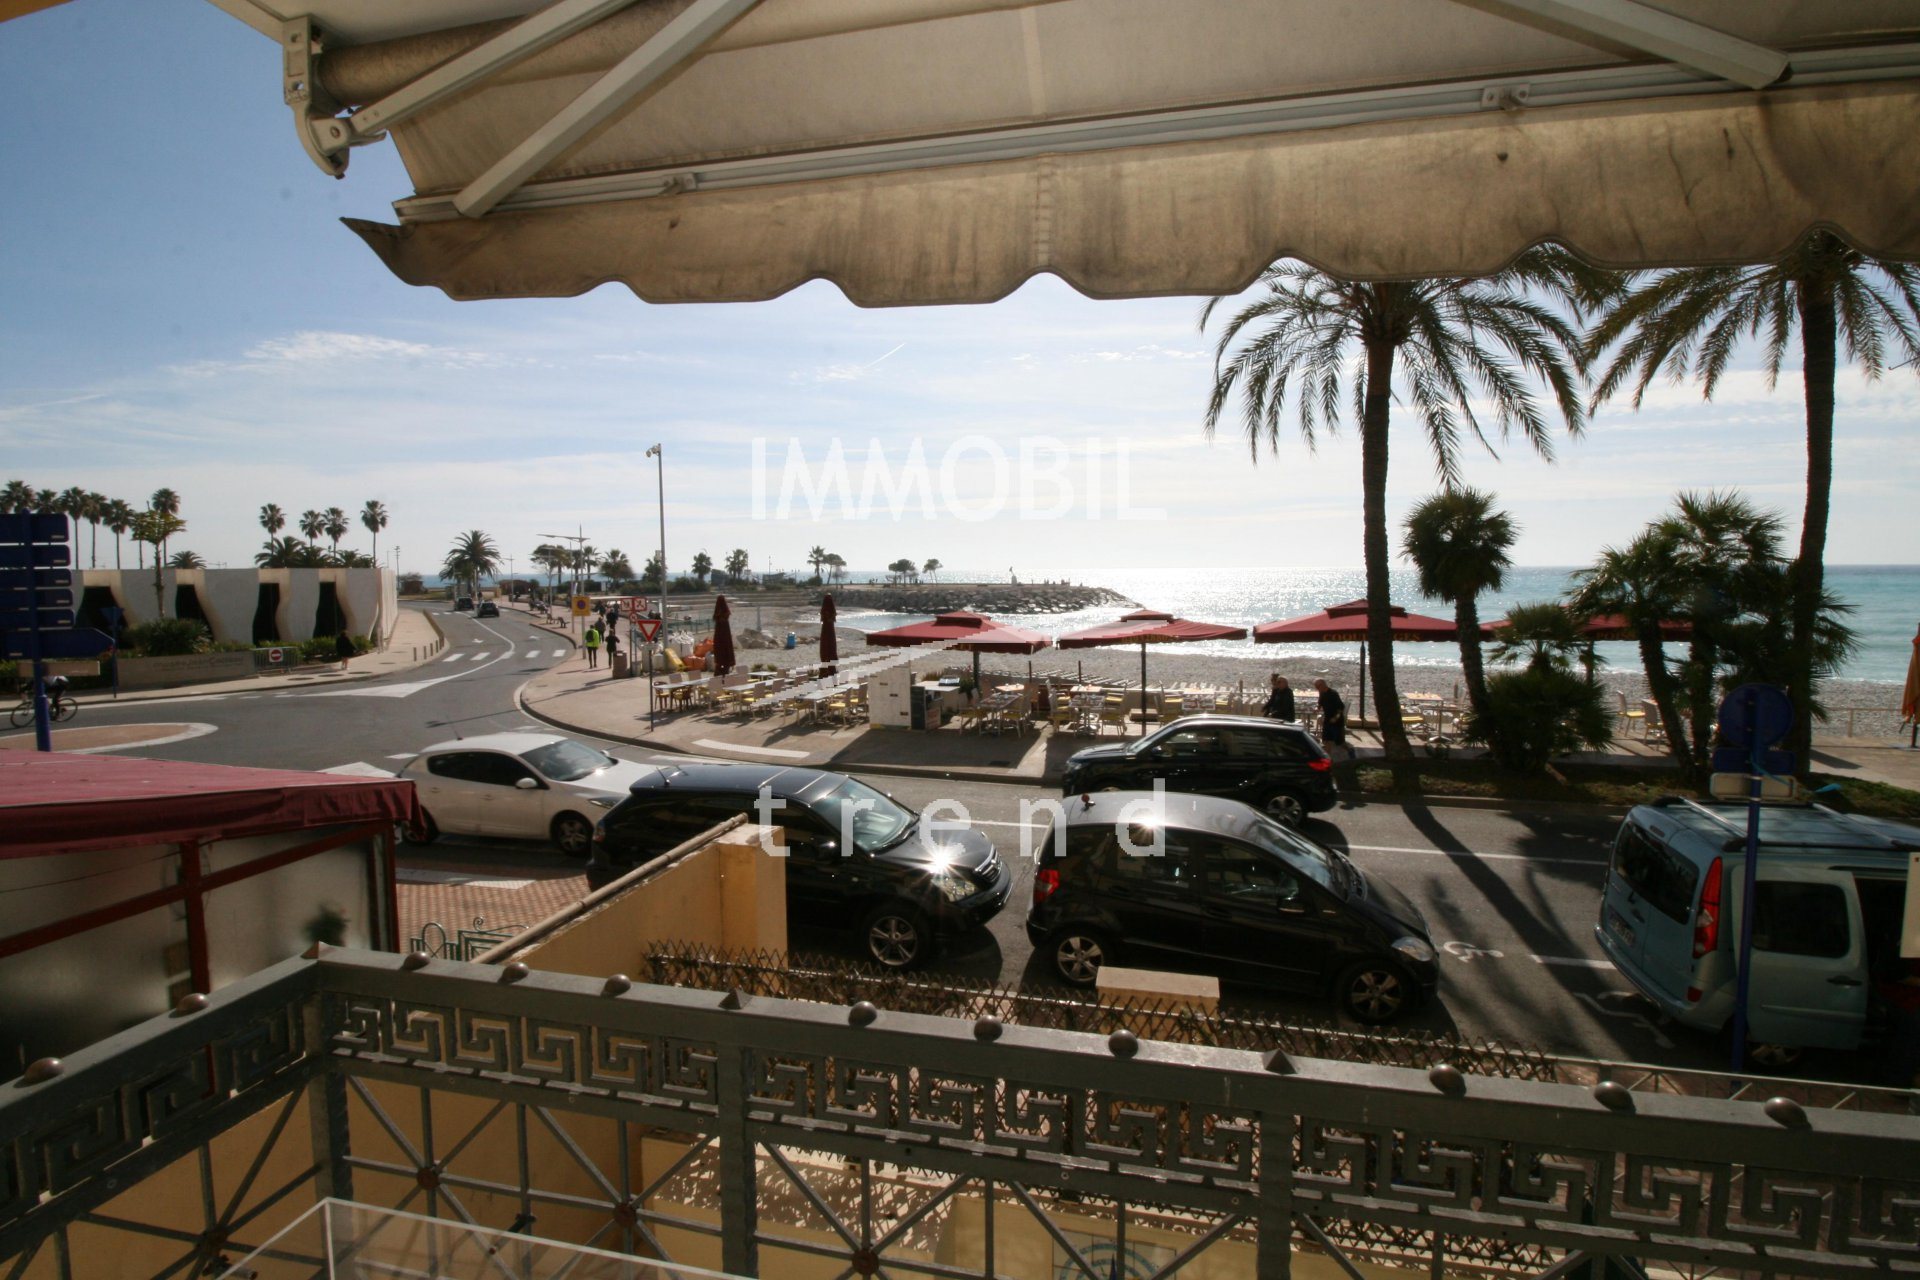 Menton Real Estate - For sale, seafront two bedroom apartment with double garage